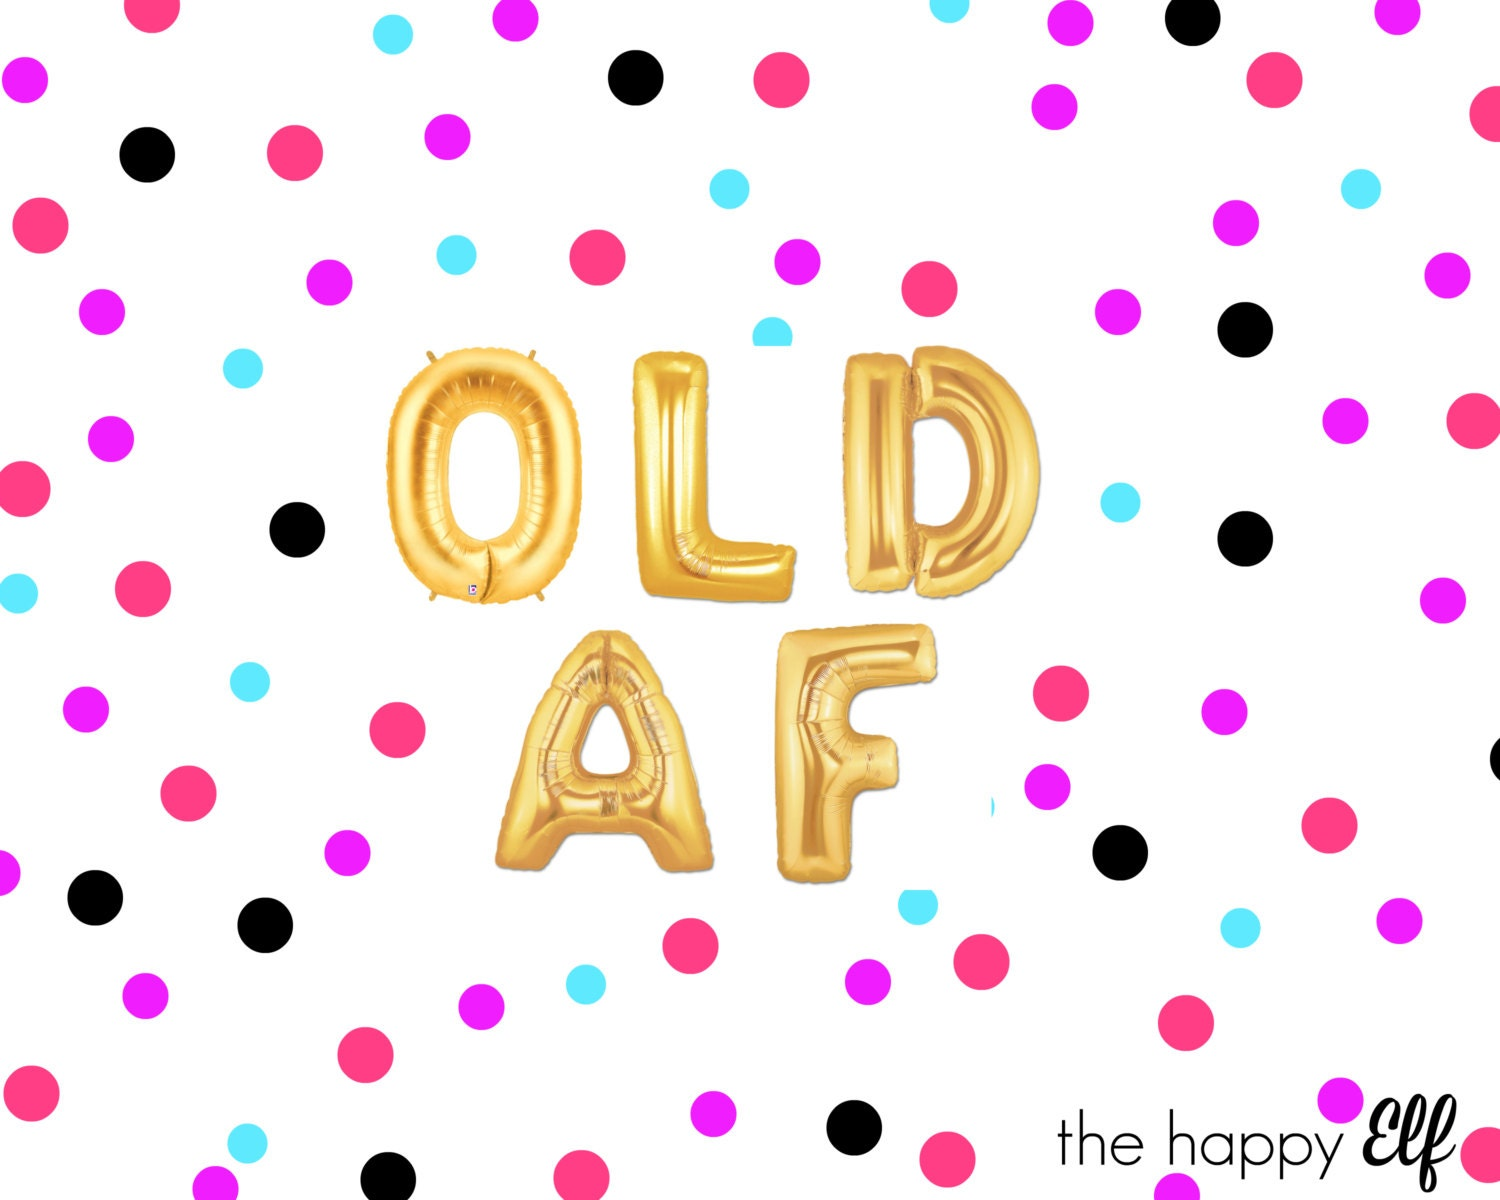 16 Gold OLD AF Balloons Banner Old Af Over The Hill Dirty 30 60th Birthday Party Decor As F